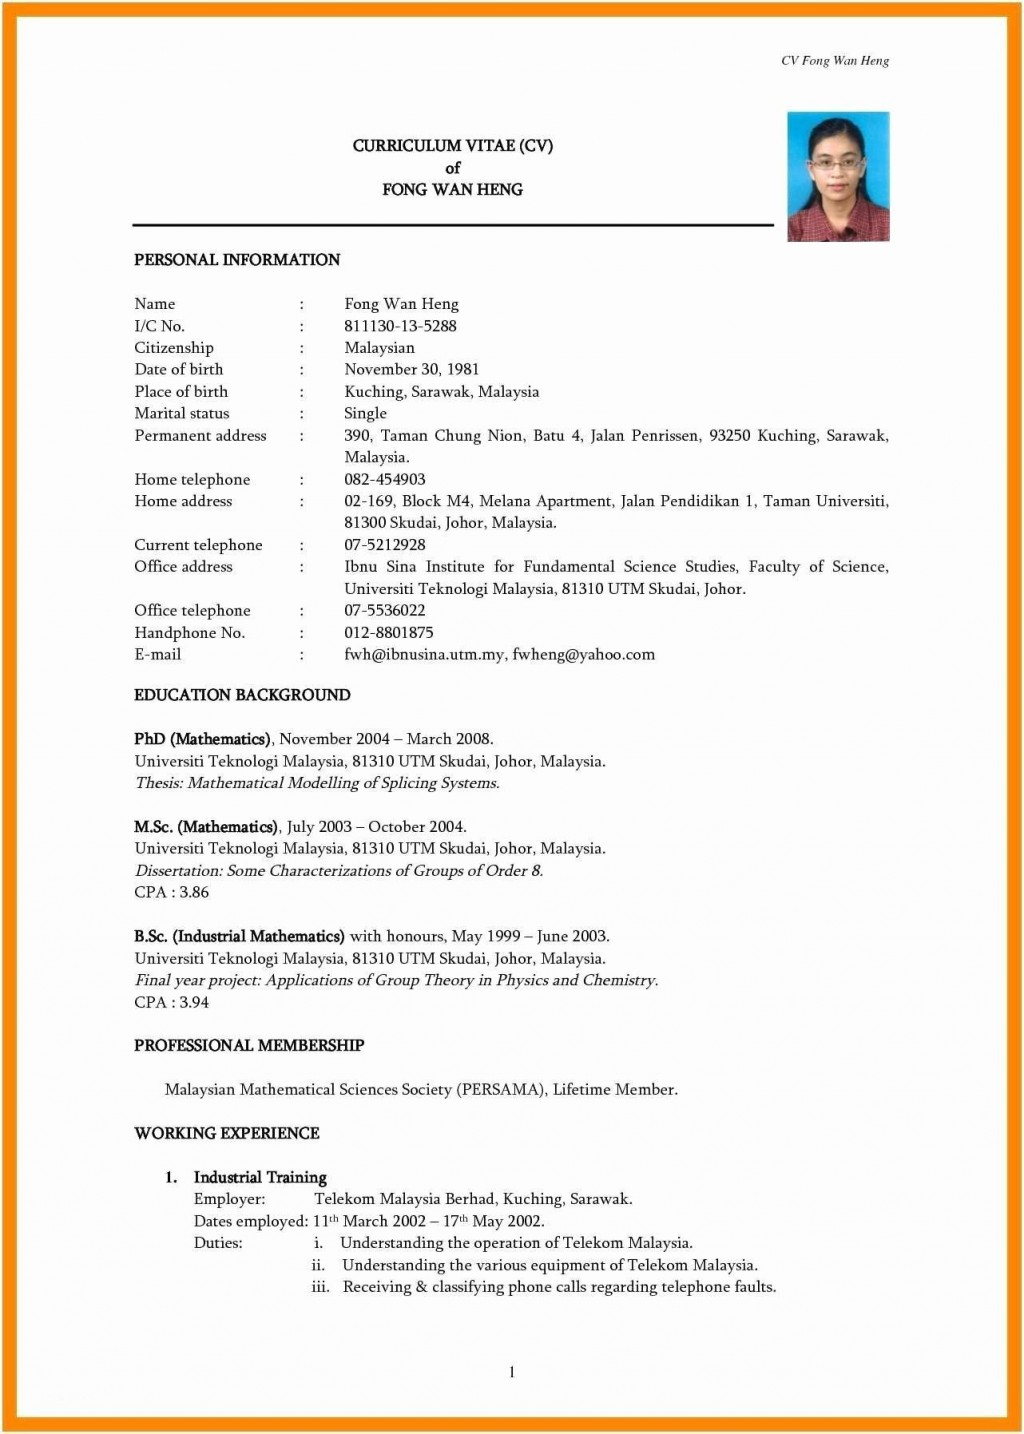 002 Formidable Free Resume Template 2015 Highest Quality Large